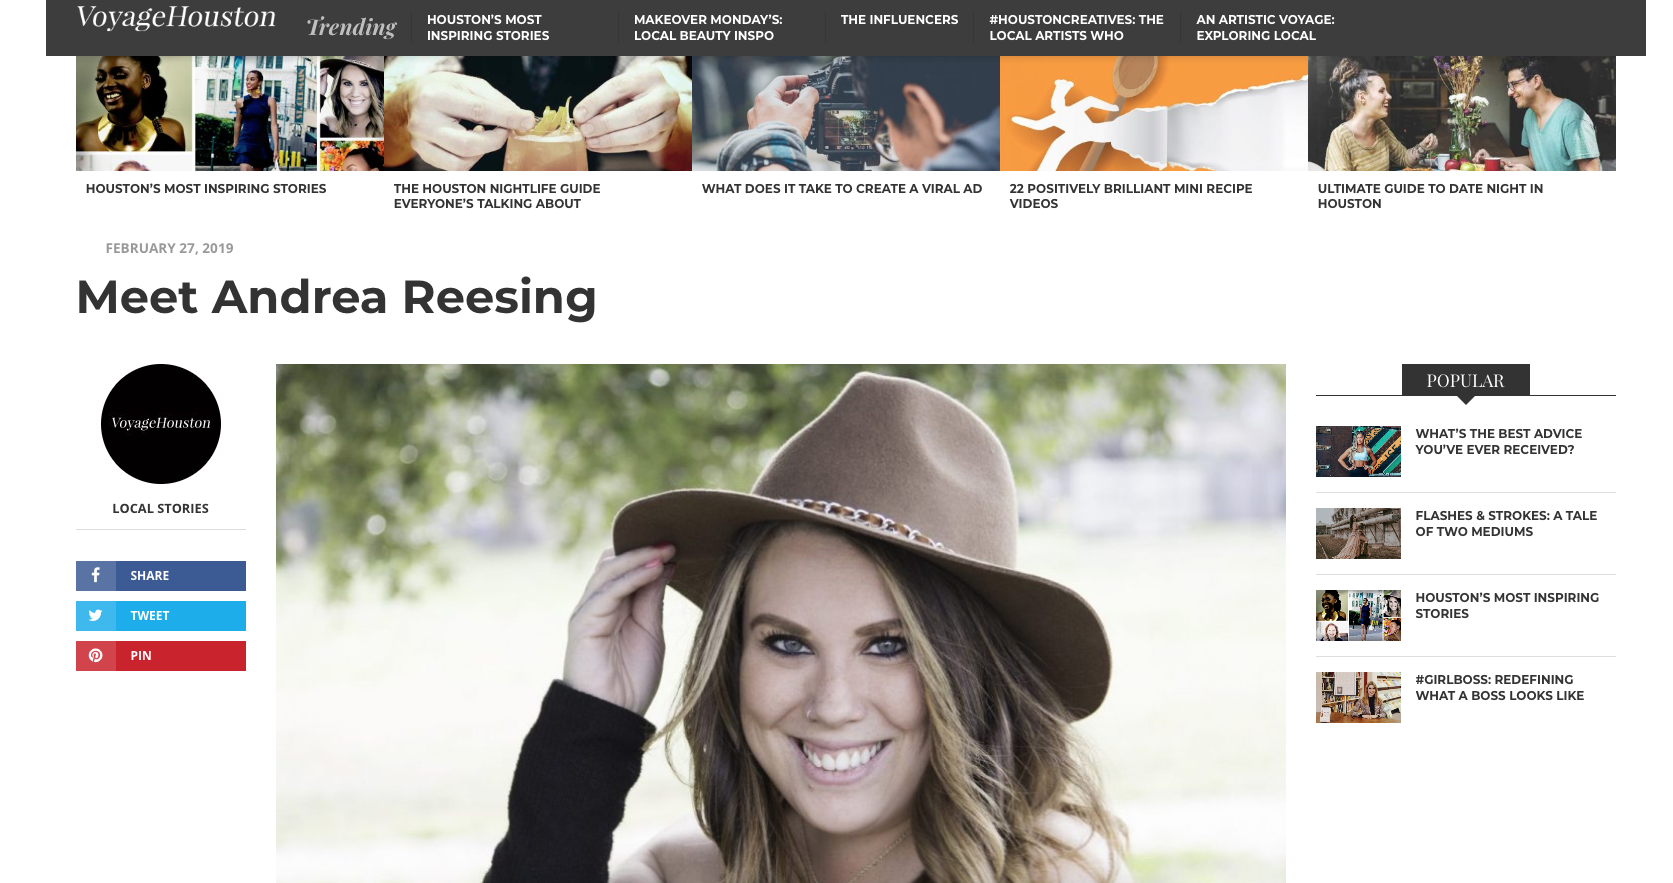 Screen Shot 2019-03-05 at 11.21.35 AM.png